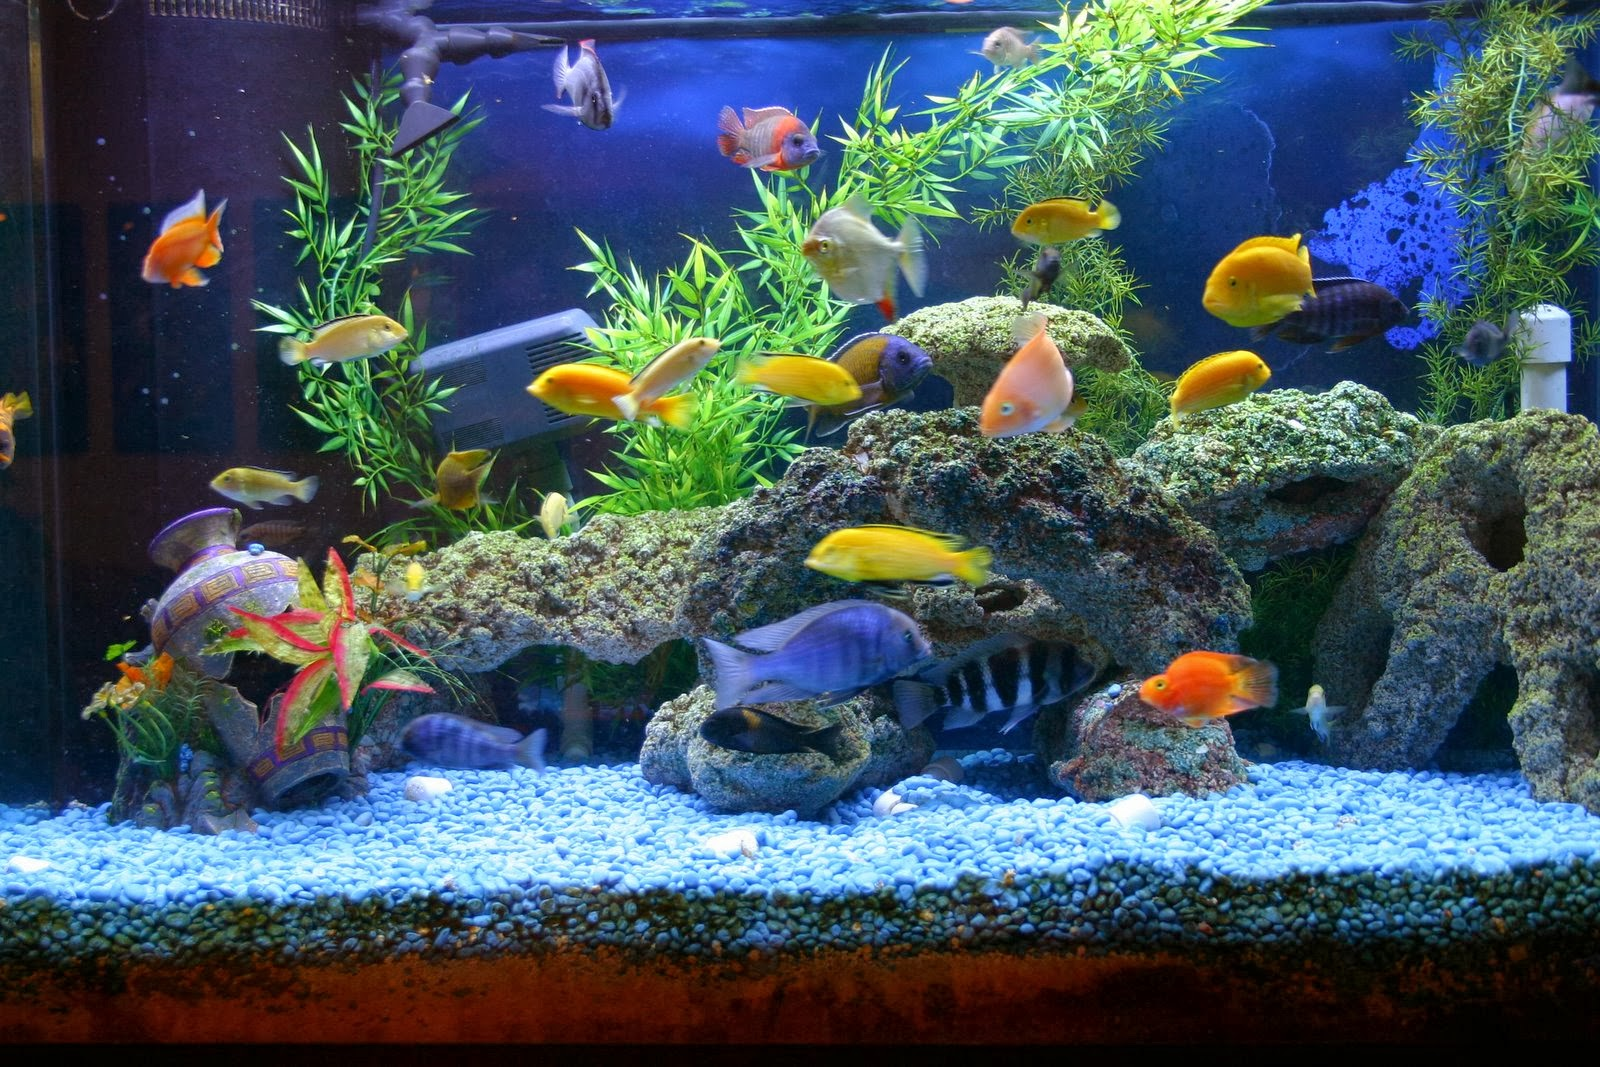 ... of useful devices which can be used in different types of aquariums